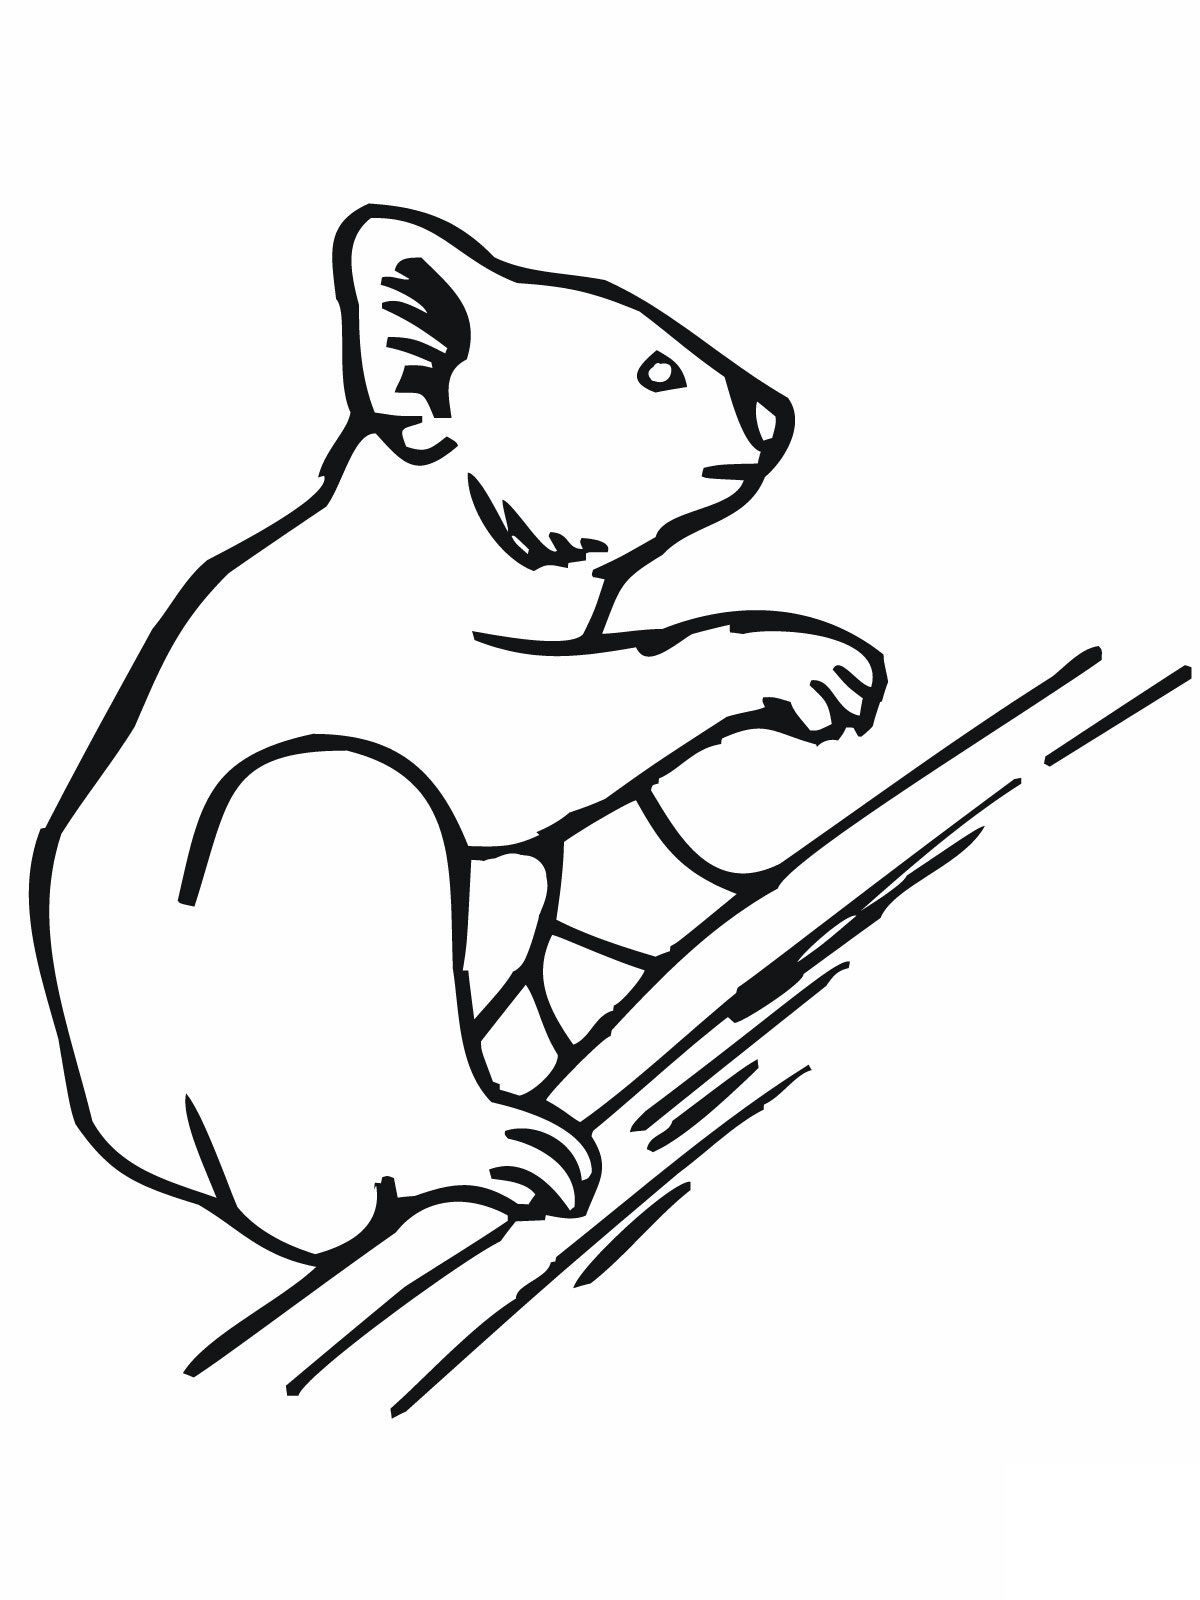 Christmas Koala Coloring Page With Free Printable Pages For Kids 3D Pinterest